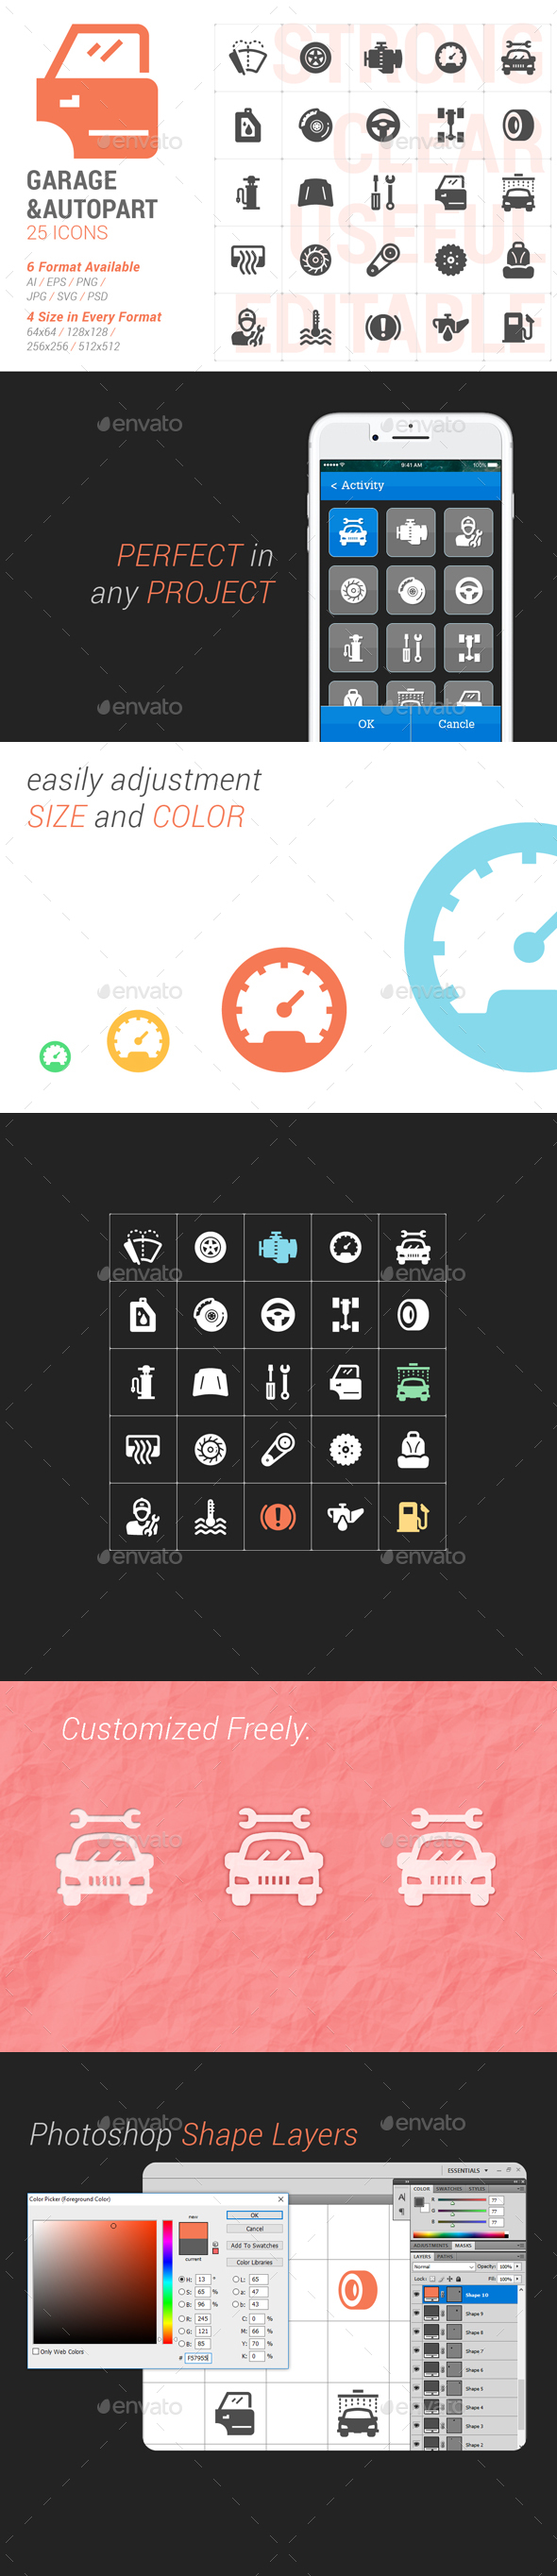 25 Garage & Auto Part Filled Icon - Icons